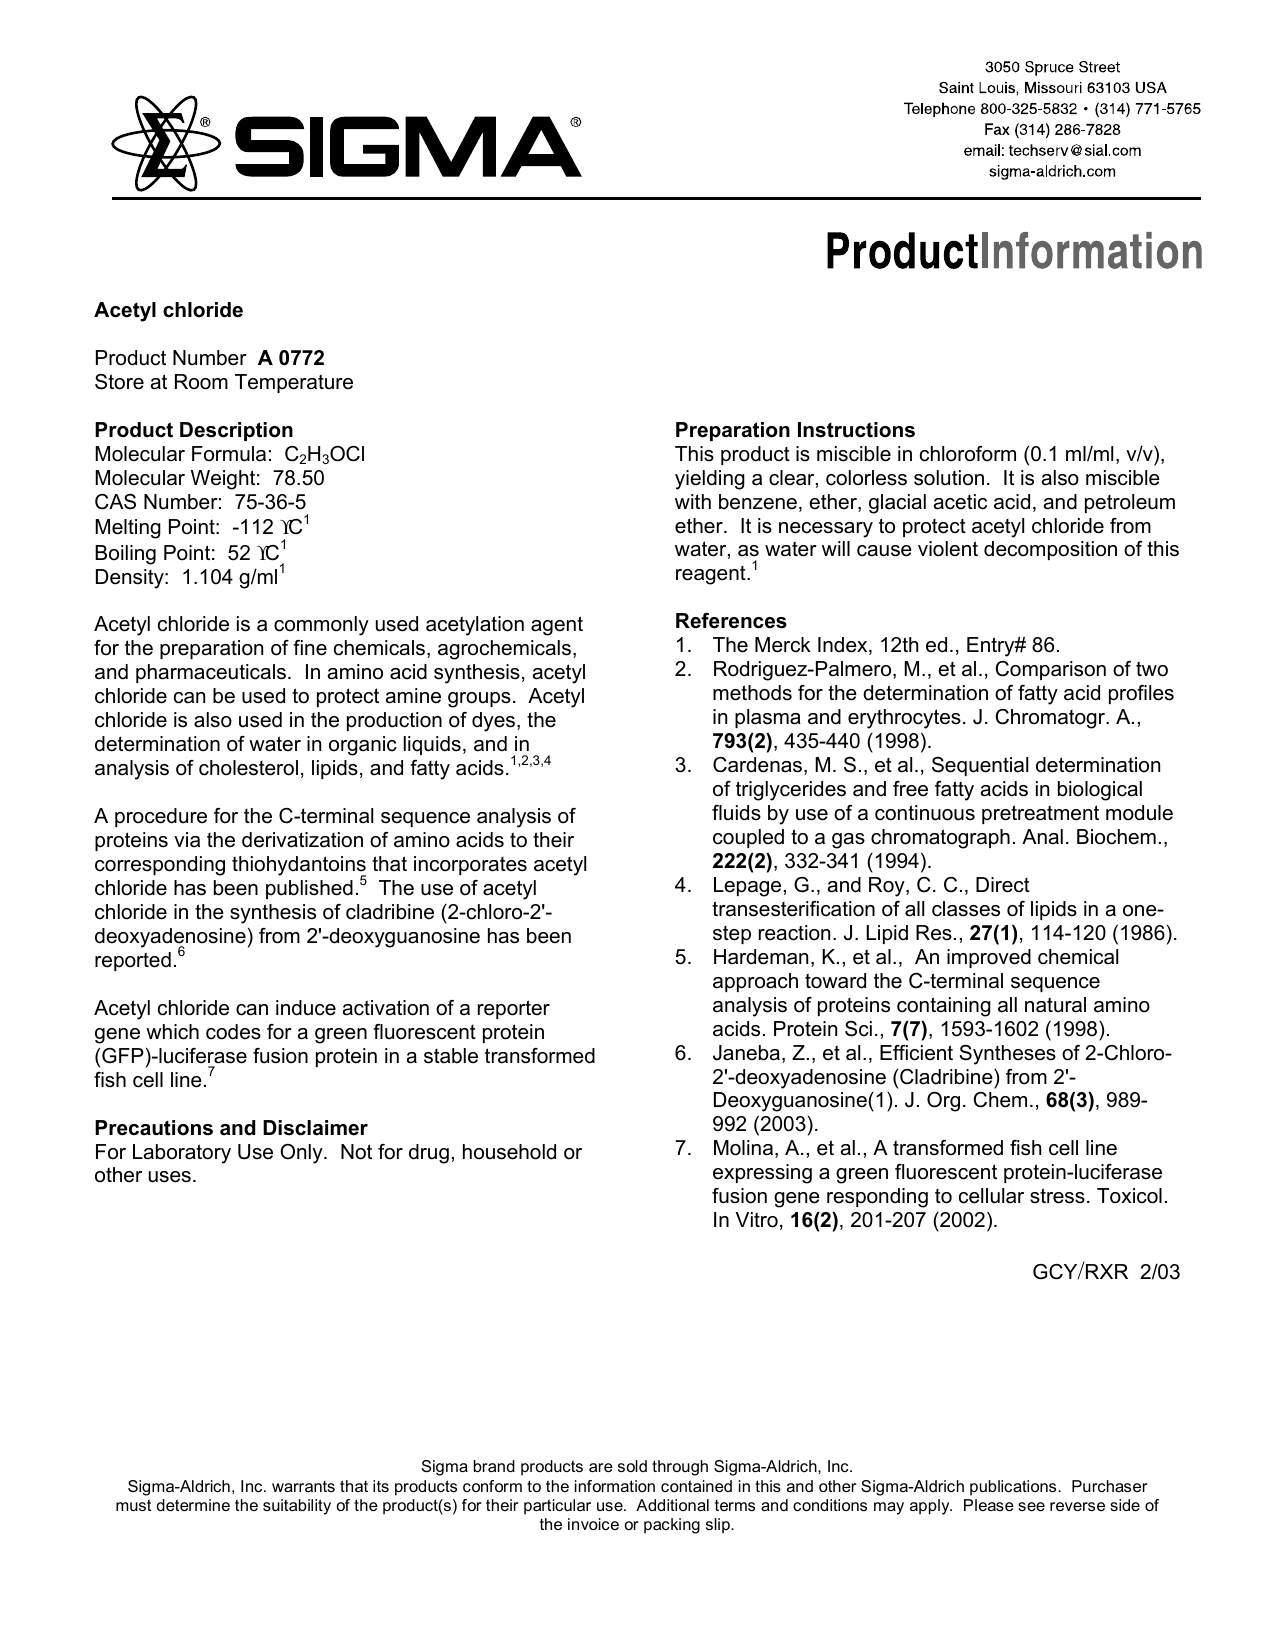 Acetyl chloride (A0772) - Product Information Sheet - Sigma